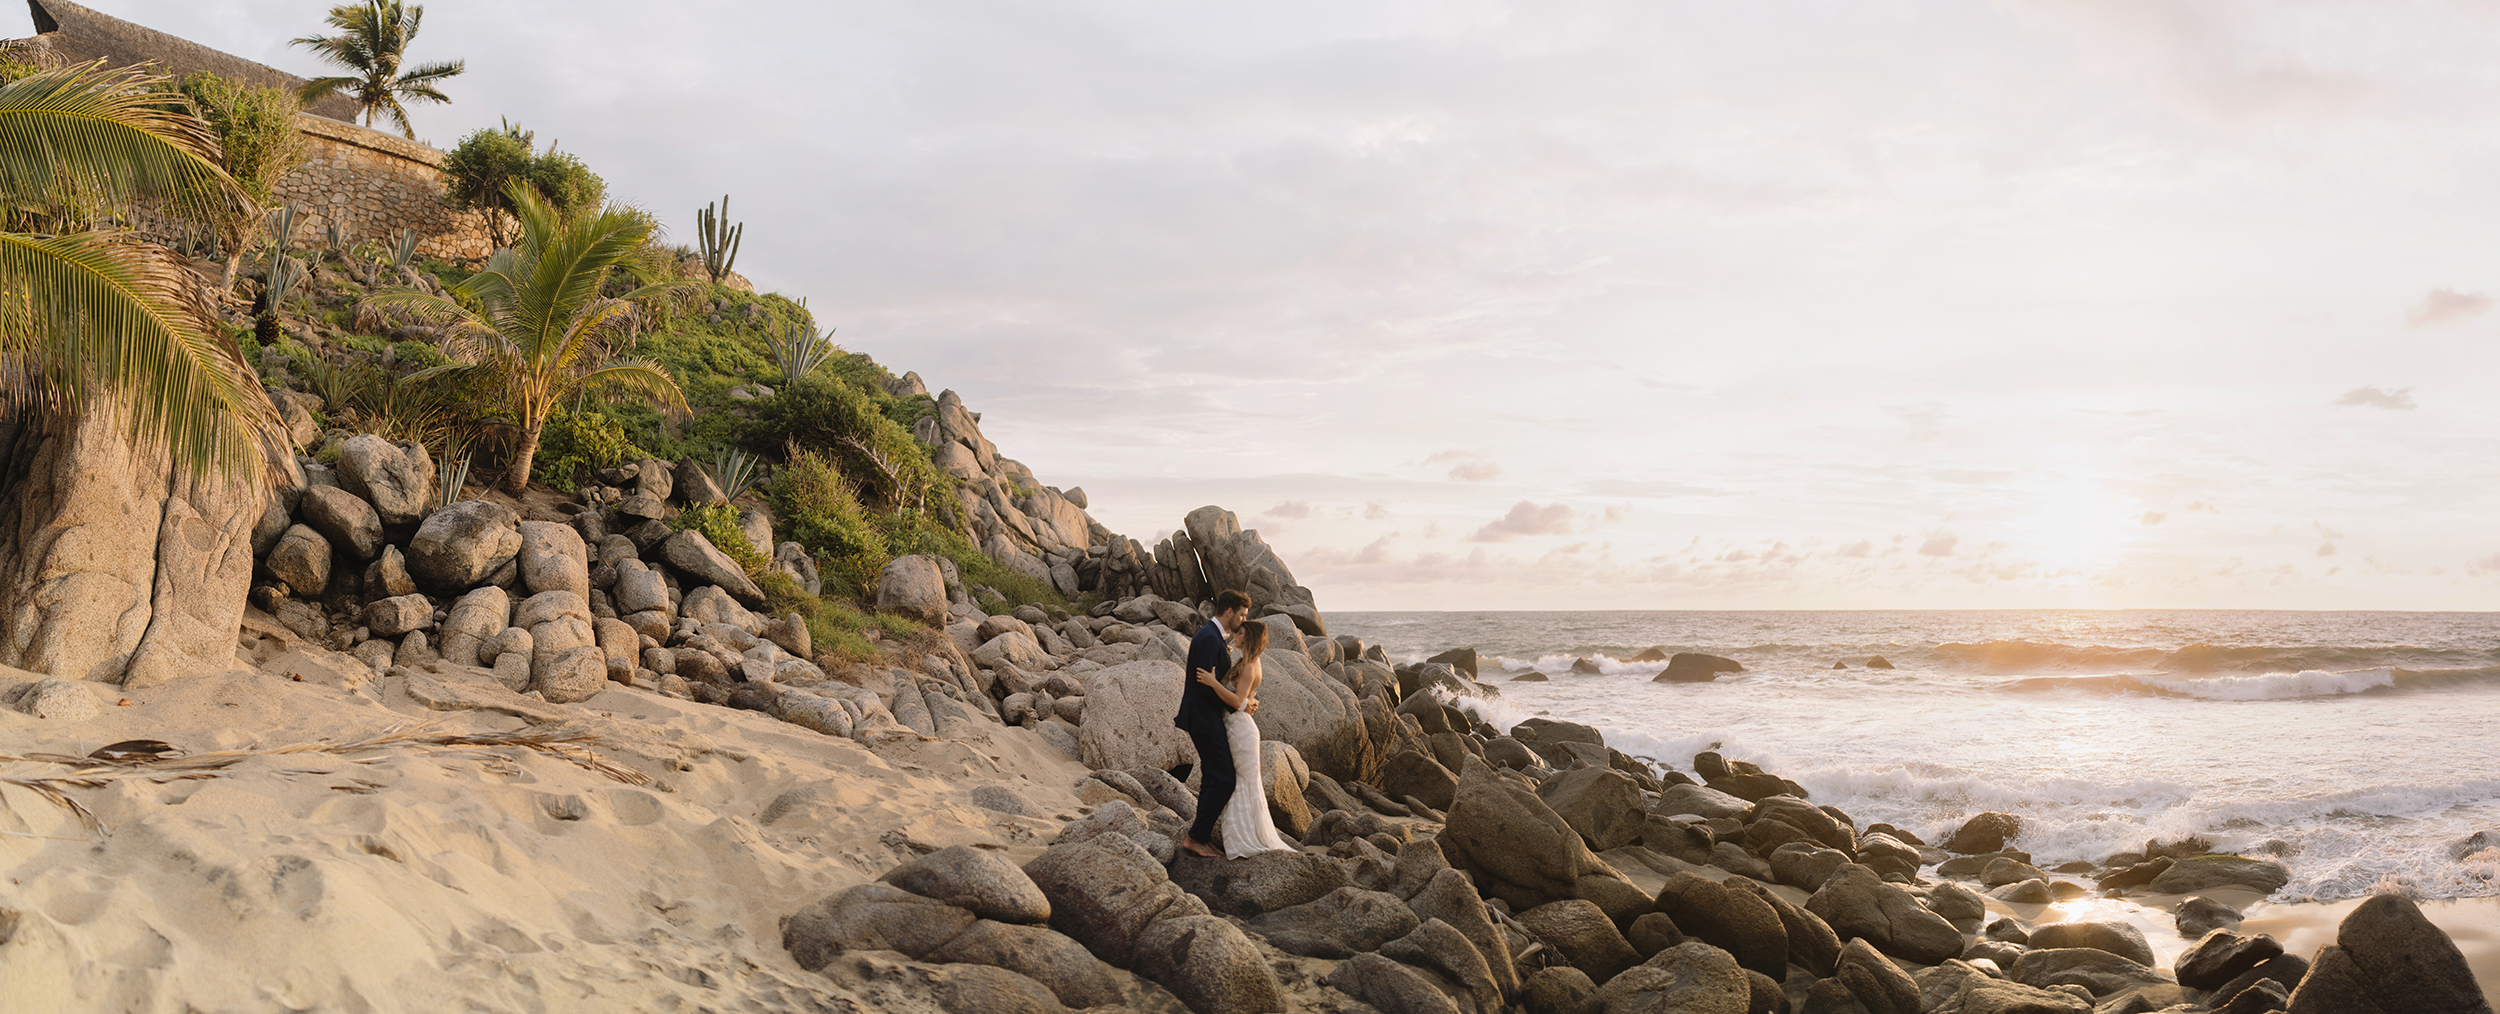 Colby-and-Jess-Intimate-Destination-Wedding-Sayulita-Puerto-Vallarta-Mexico140.jpg